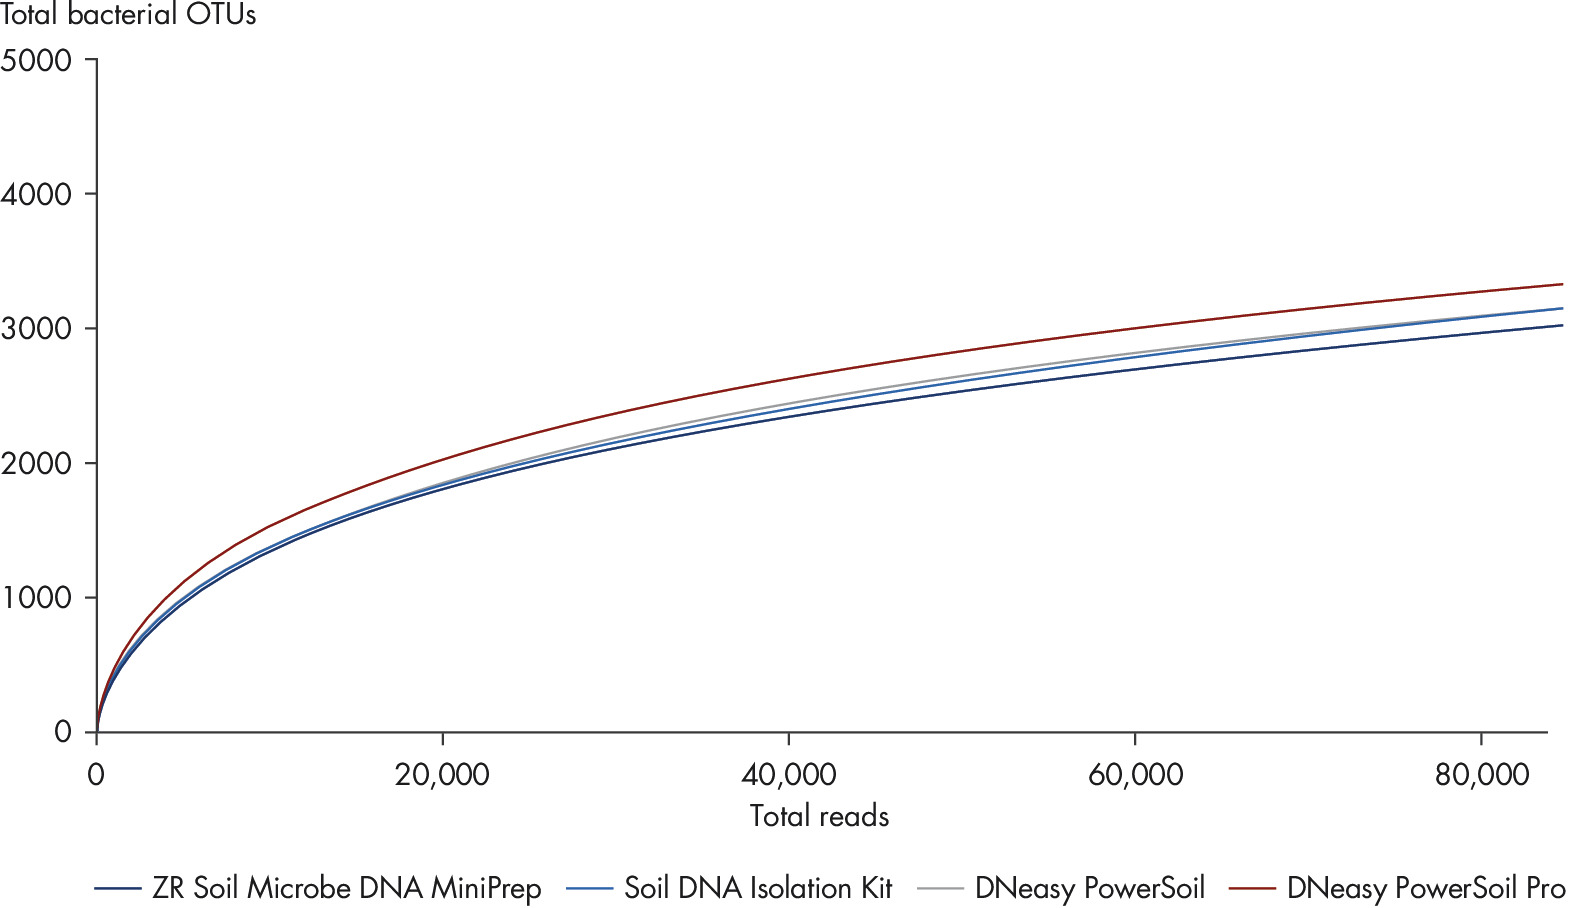 Figure 3: Increased bacterial OTUs with the new DNeasy PowerSoil Pro Kit.